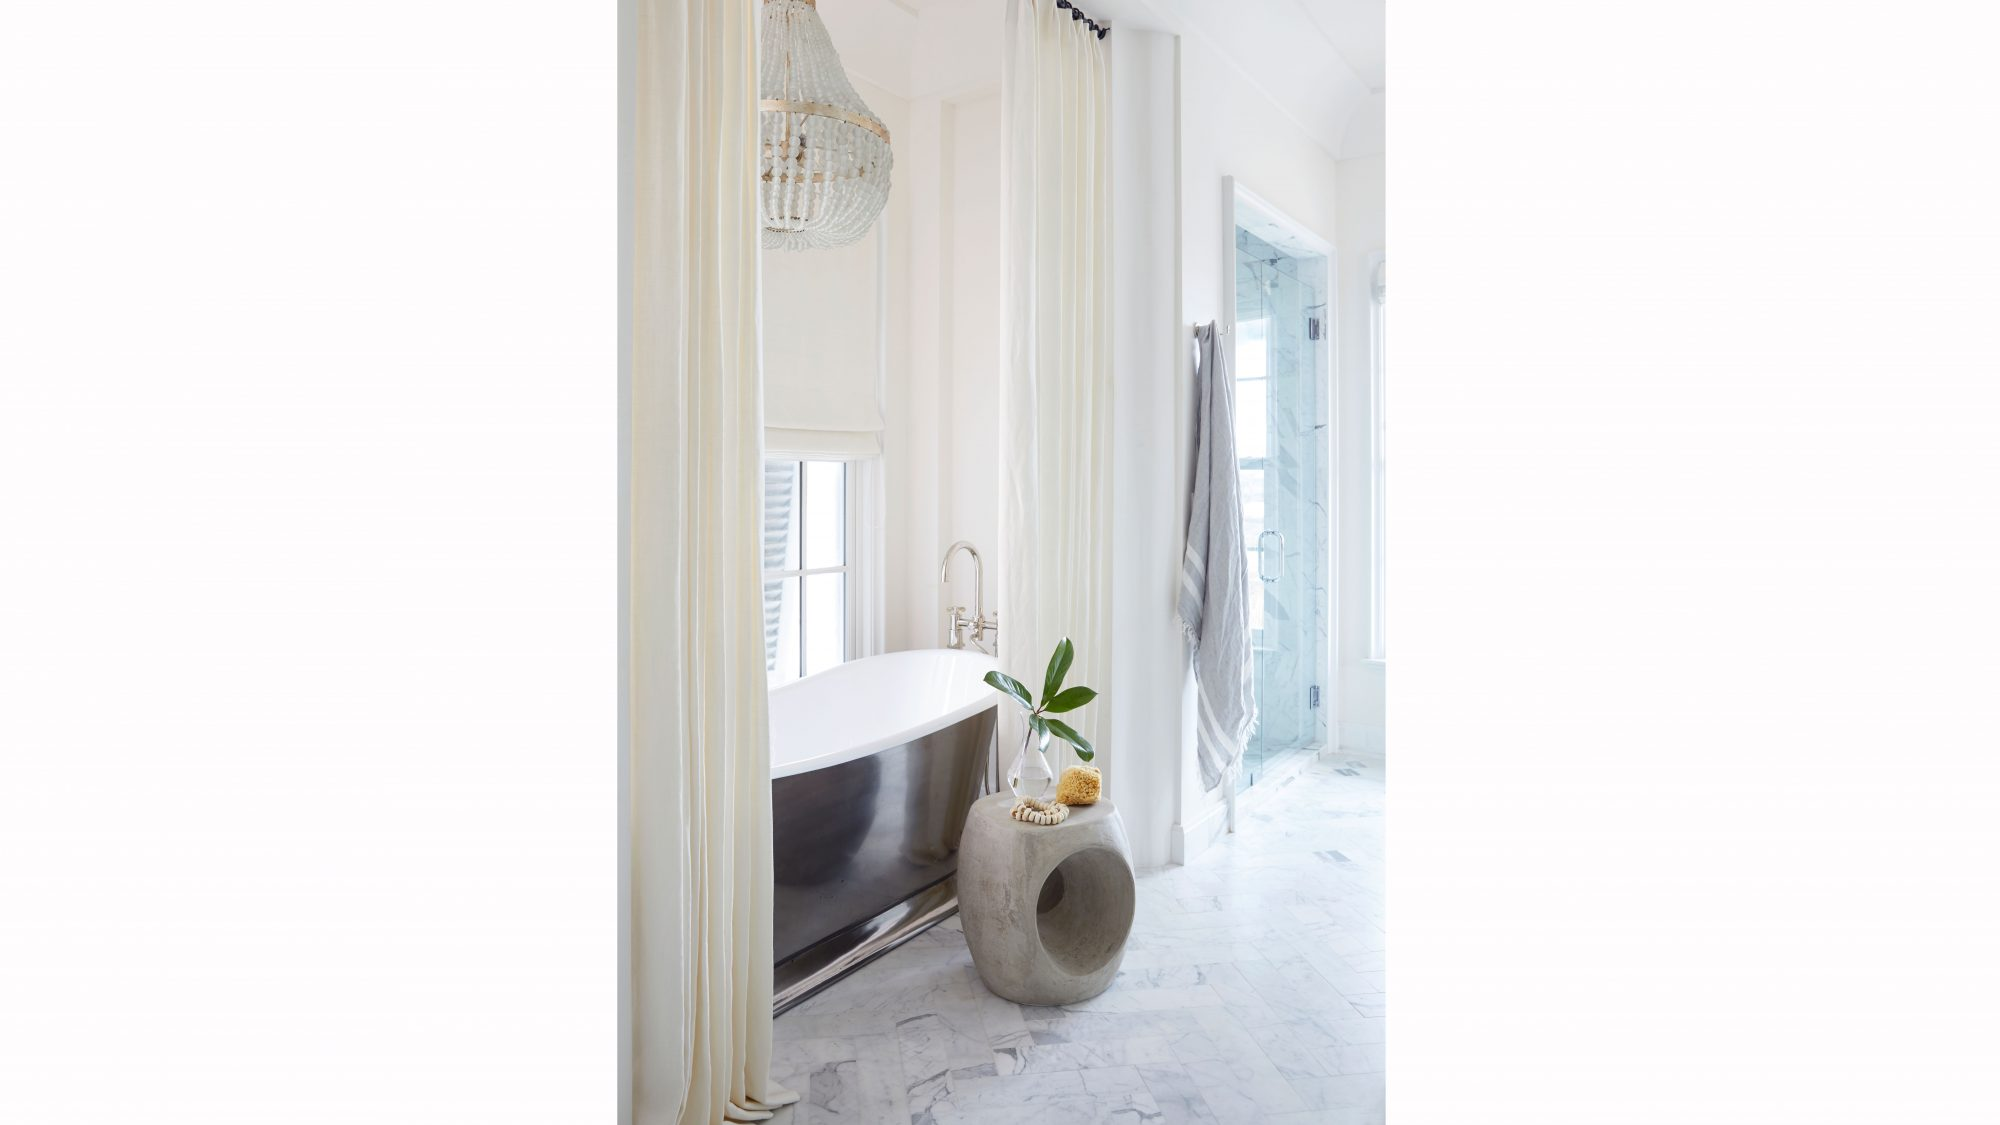 Simple white linens drape the tub in the master bath